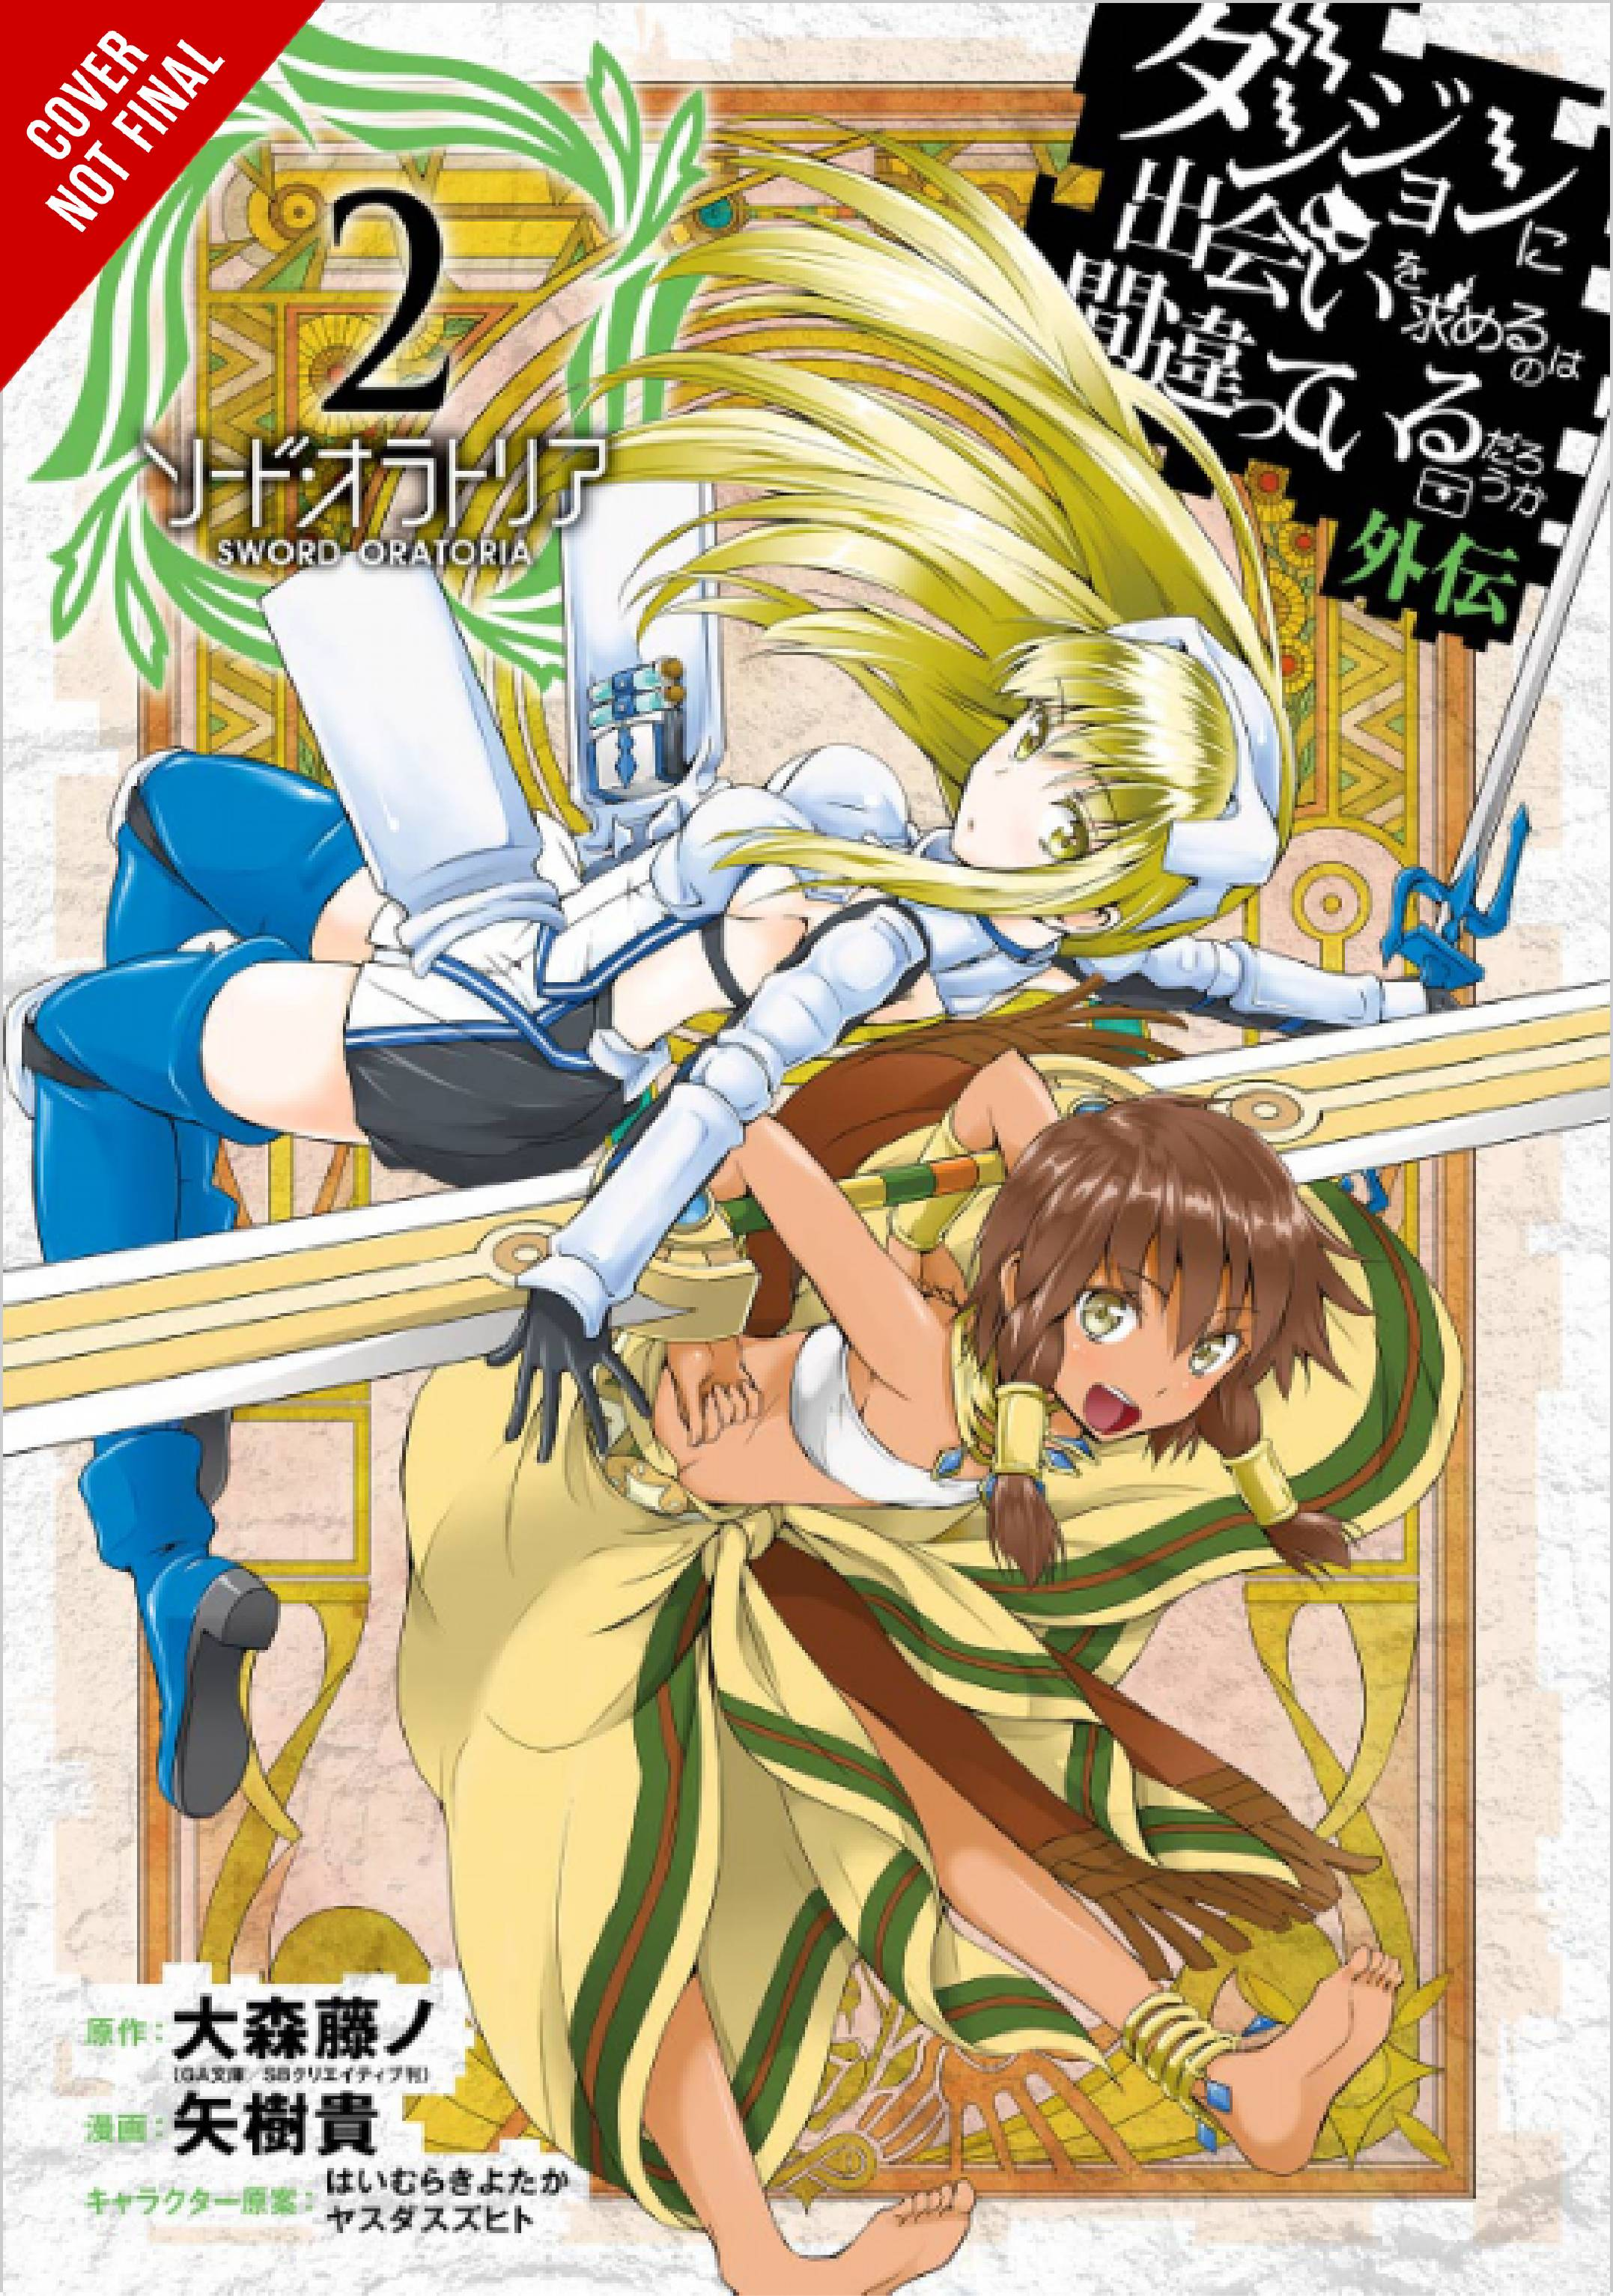 IS WRONG PICK UP GIRLS DUNGEON SWORD ORATORIA GN VOL 02